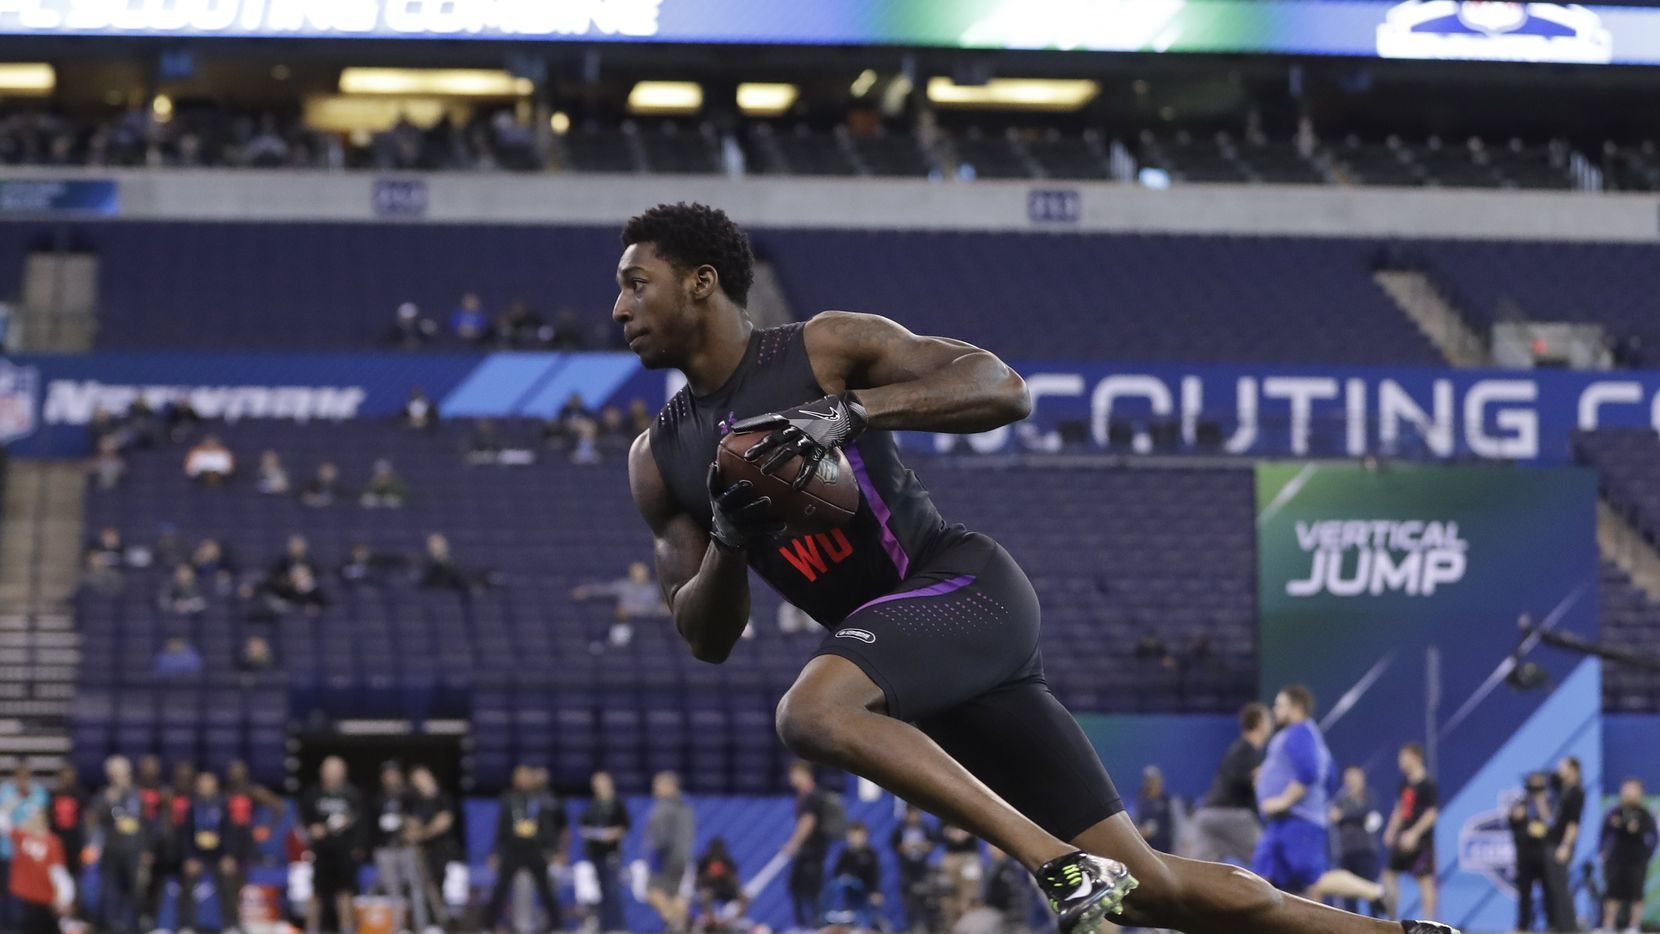 Calvin Ridley S Strengths And Weaknesses As A First Round Nfl Draft Prospect